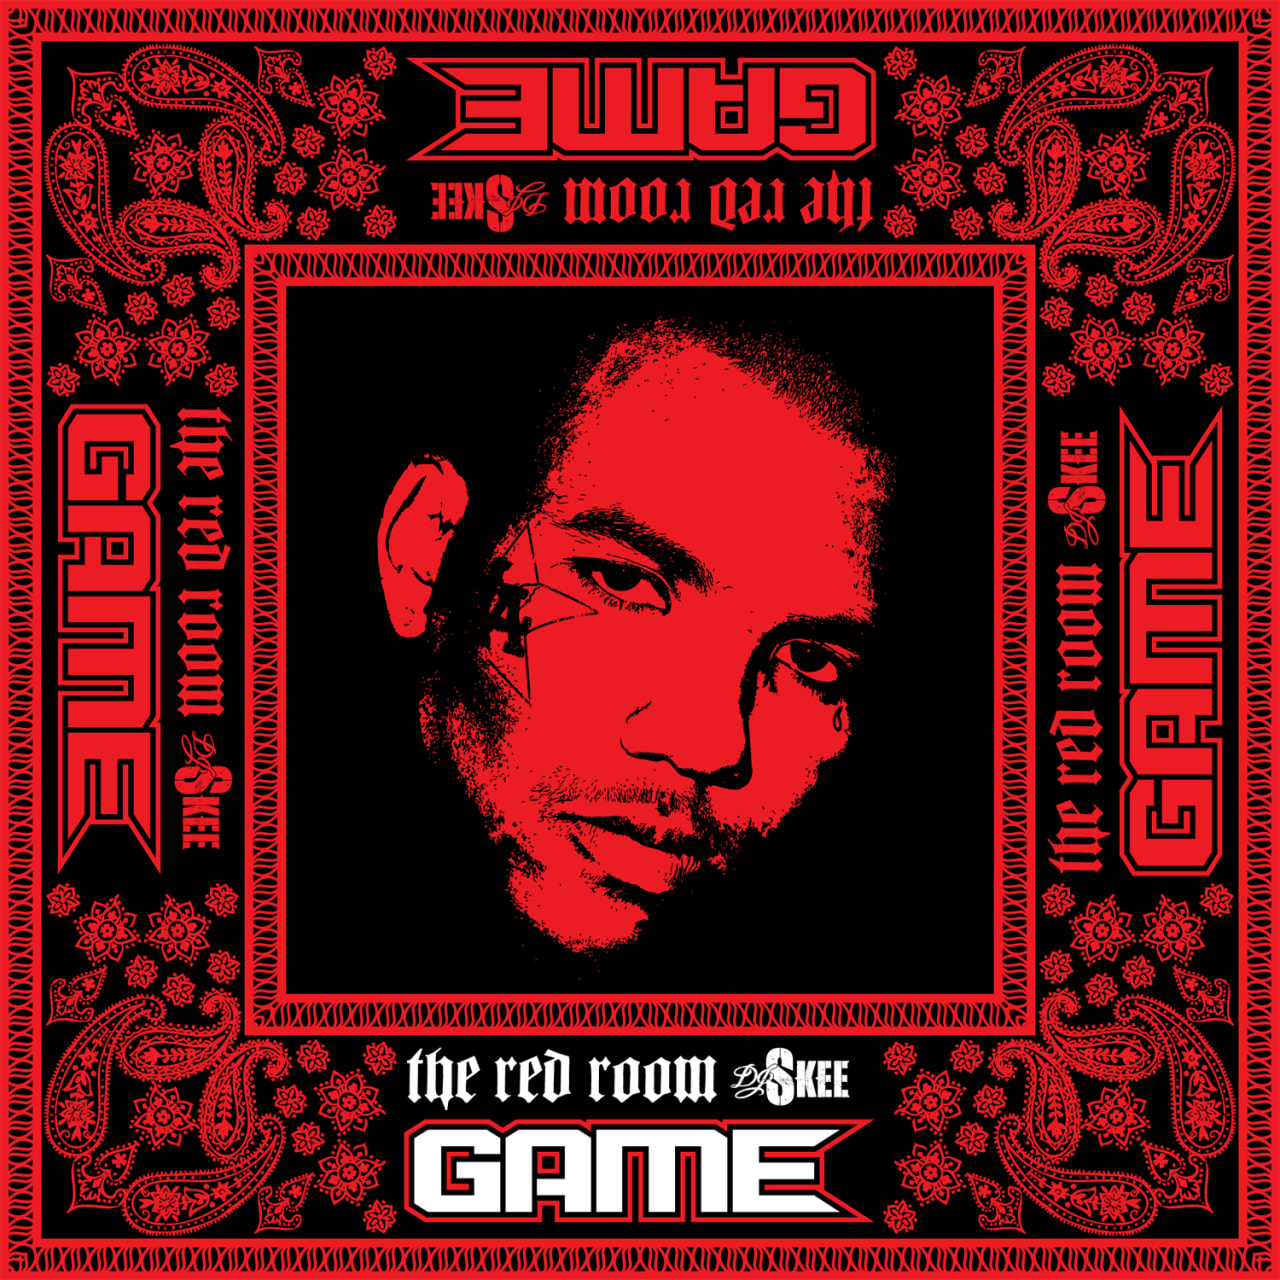 Download It Now: Game & DJ Skee